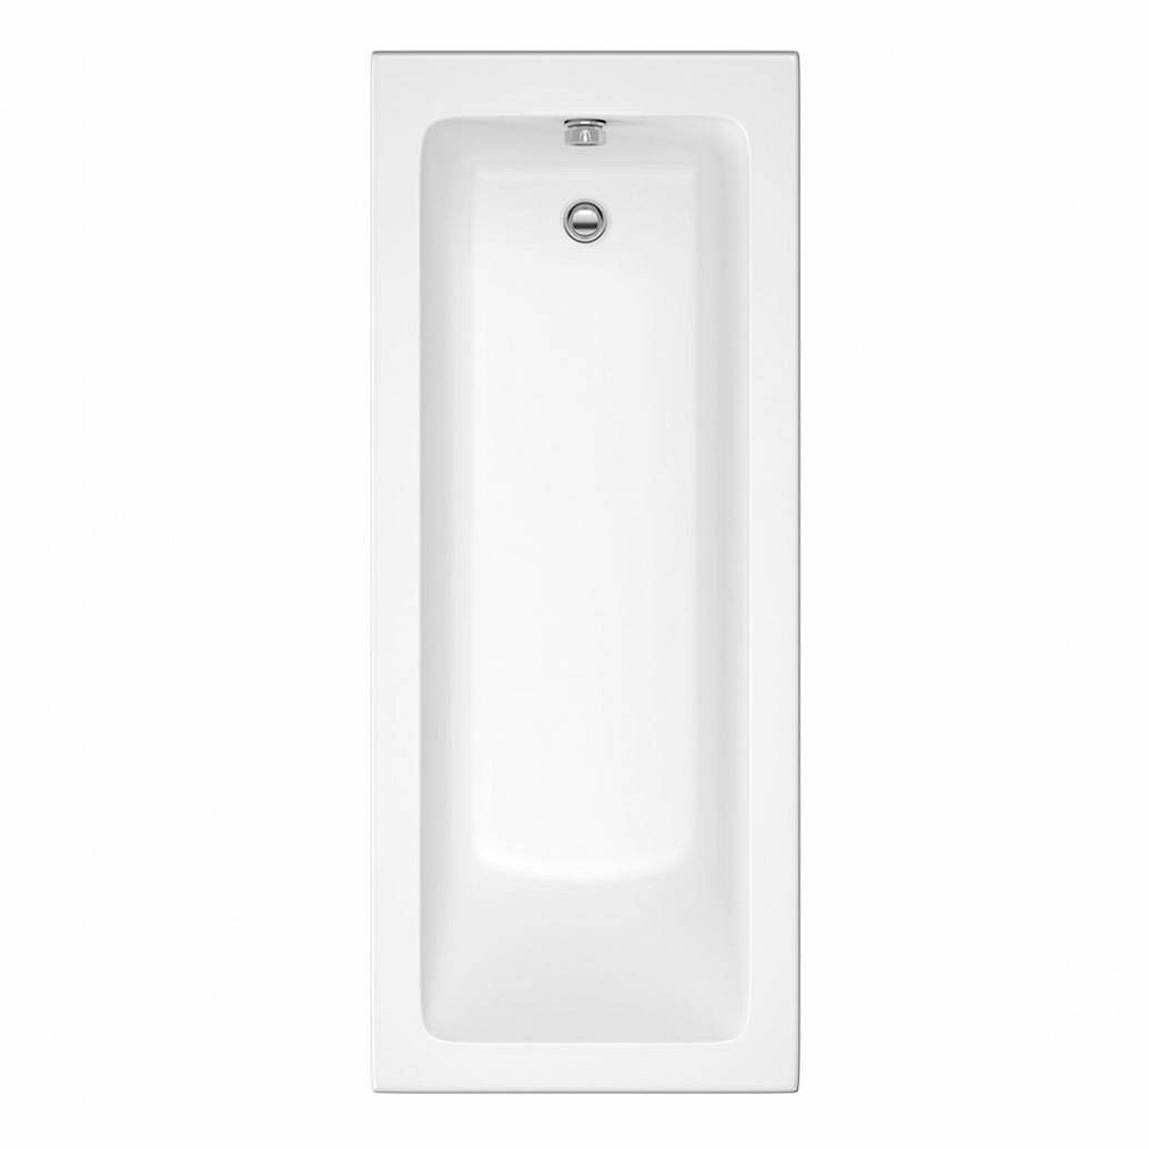 Orchard square edge single ended straight bath 1700 x 700